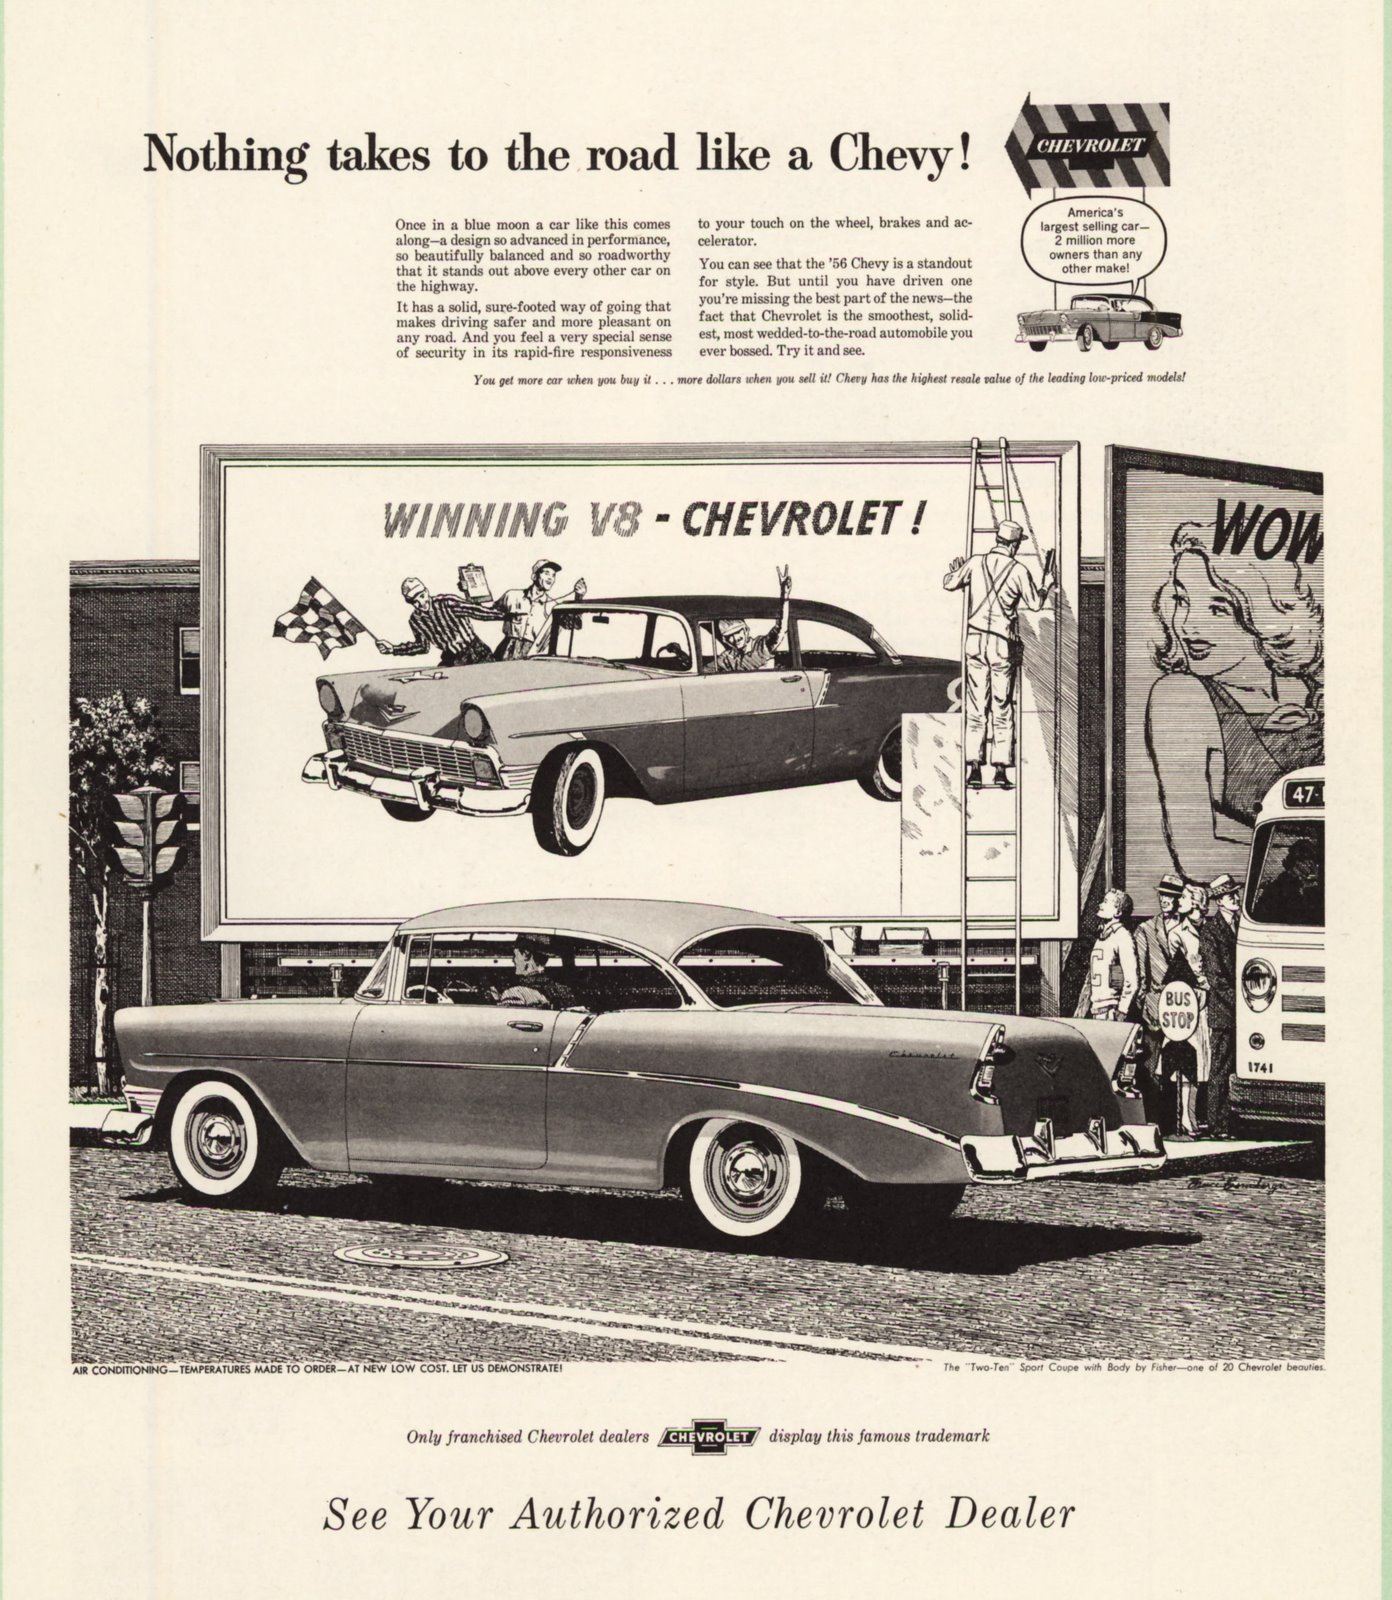 ['56+Chevy-takes+to+the+road]